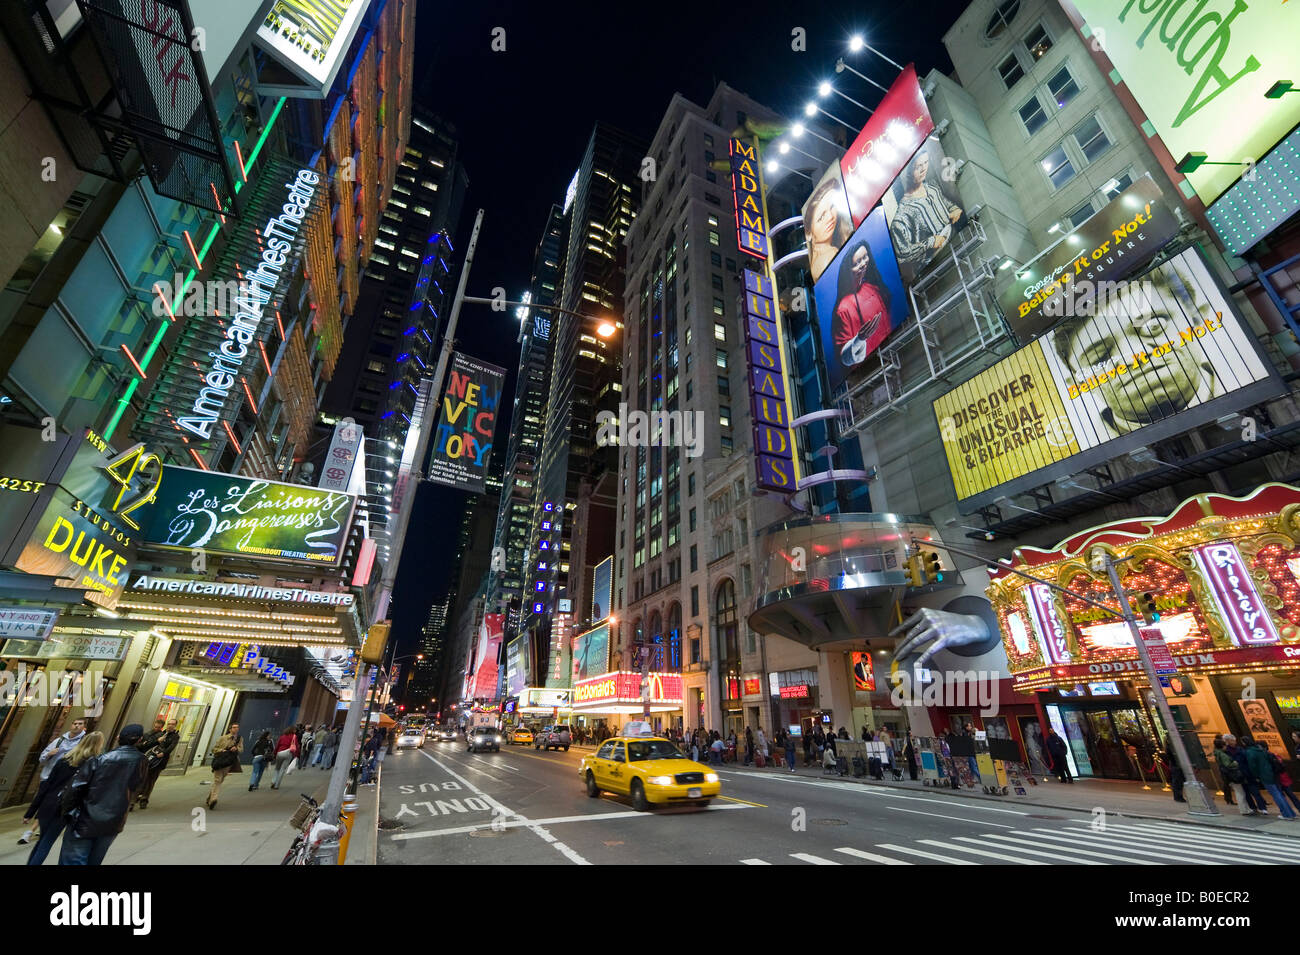 West 42nd Street at Times Square, Manhattan, New York City - Stock Image